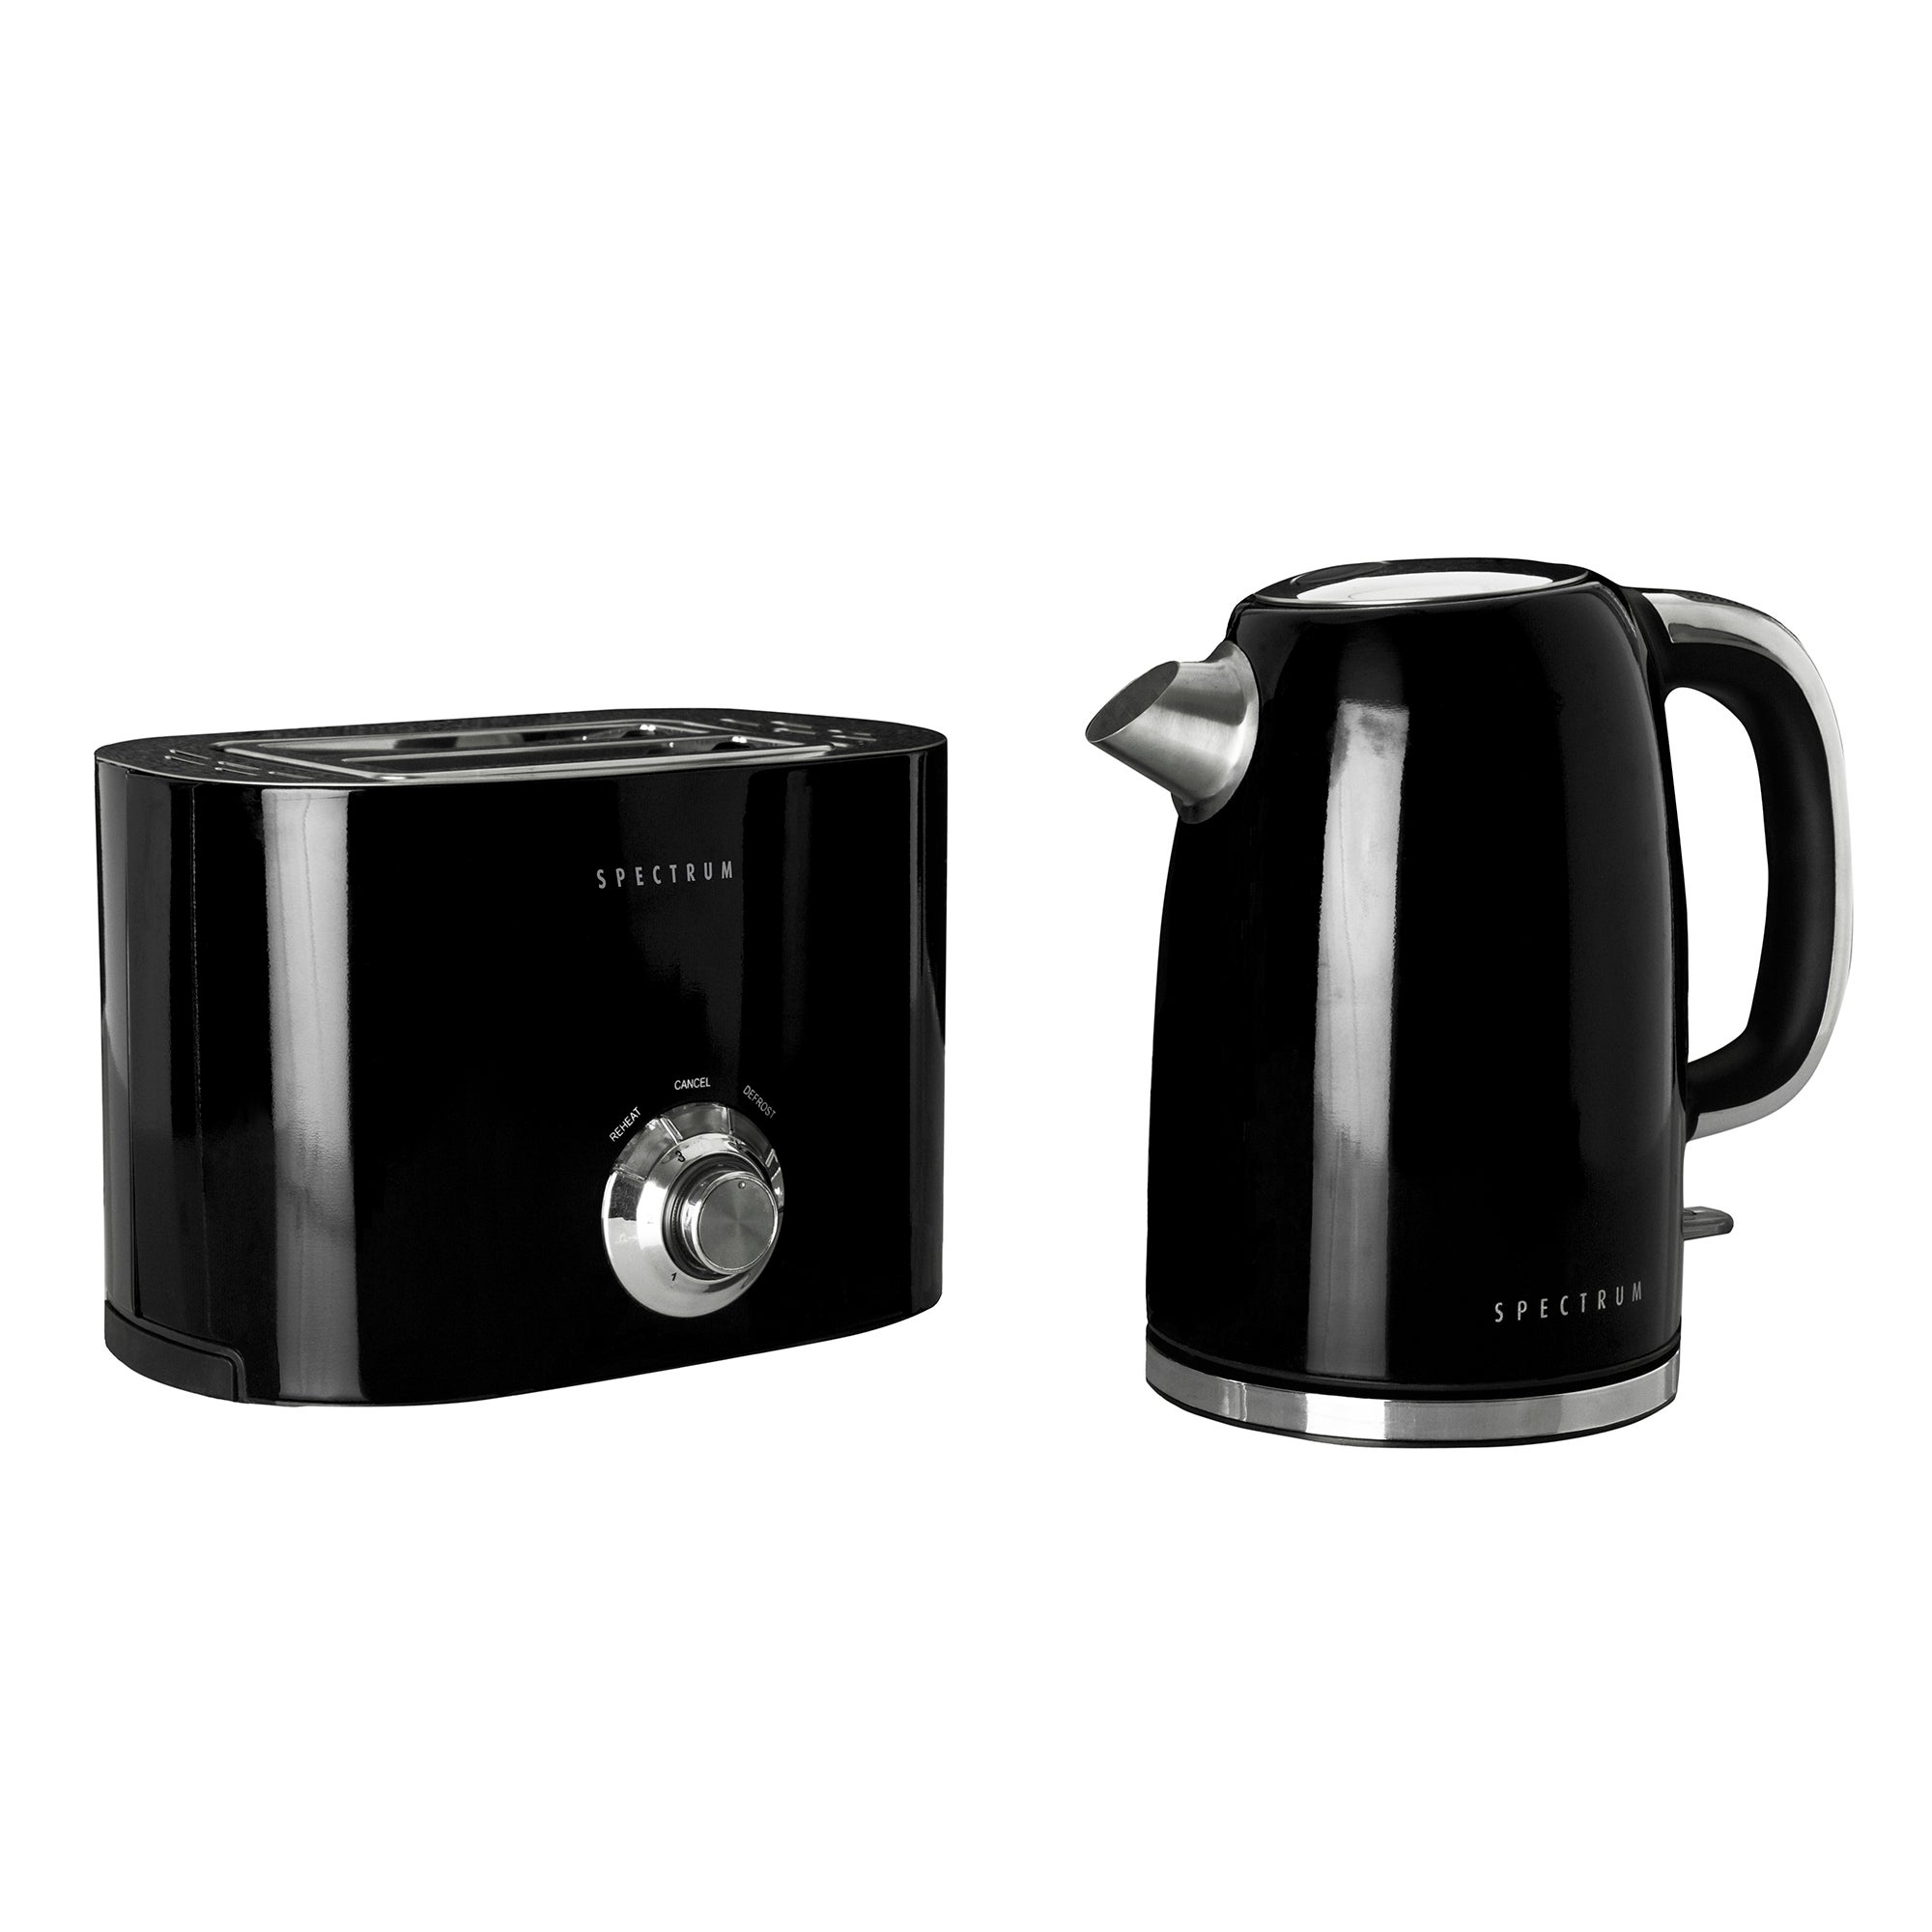 Spectrum Black Kettle and Toaster Set Black